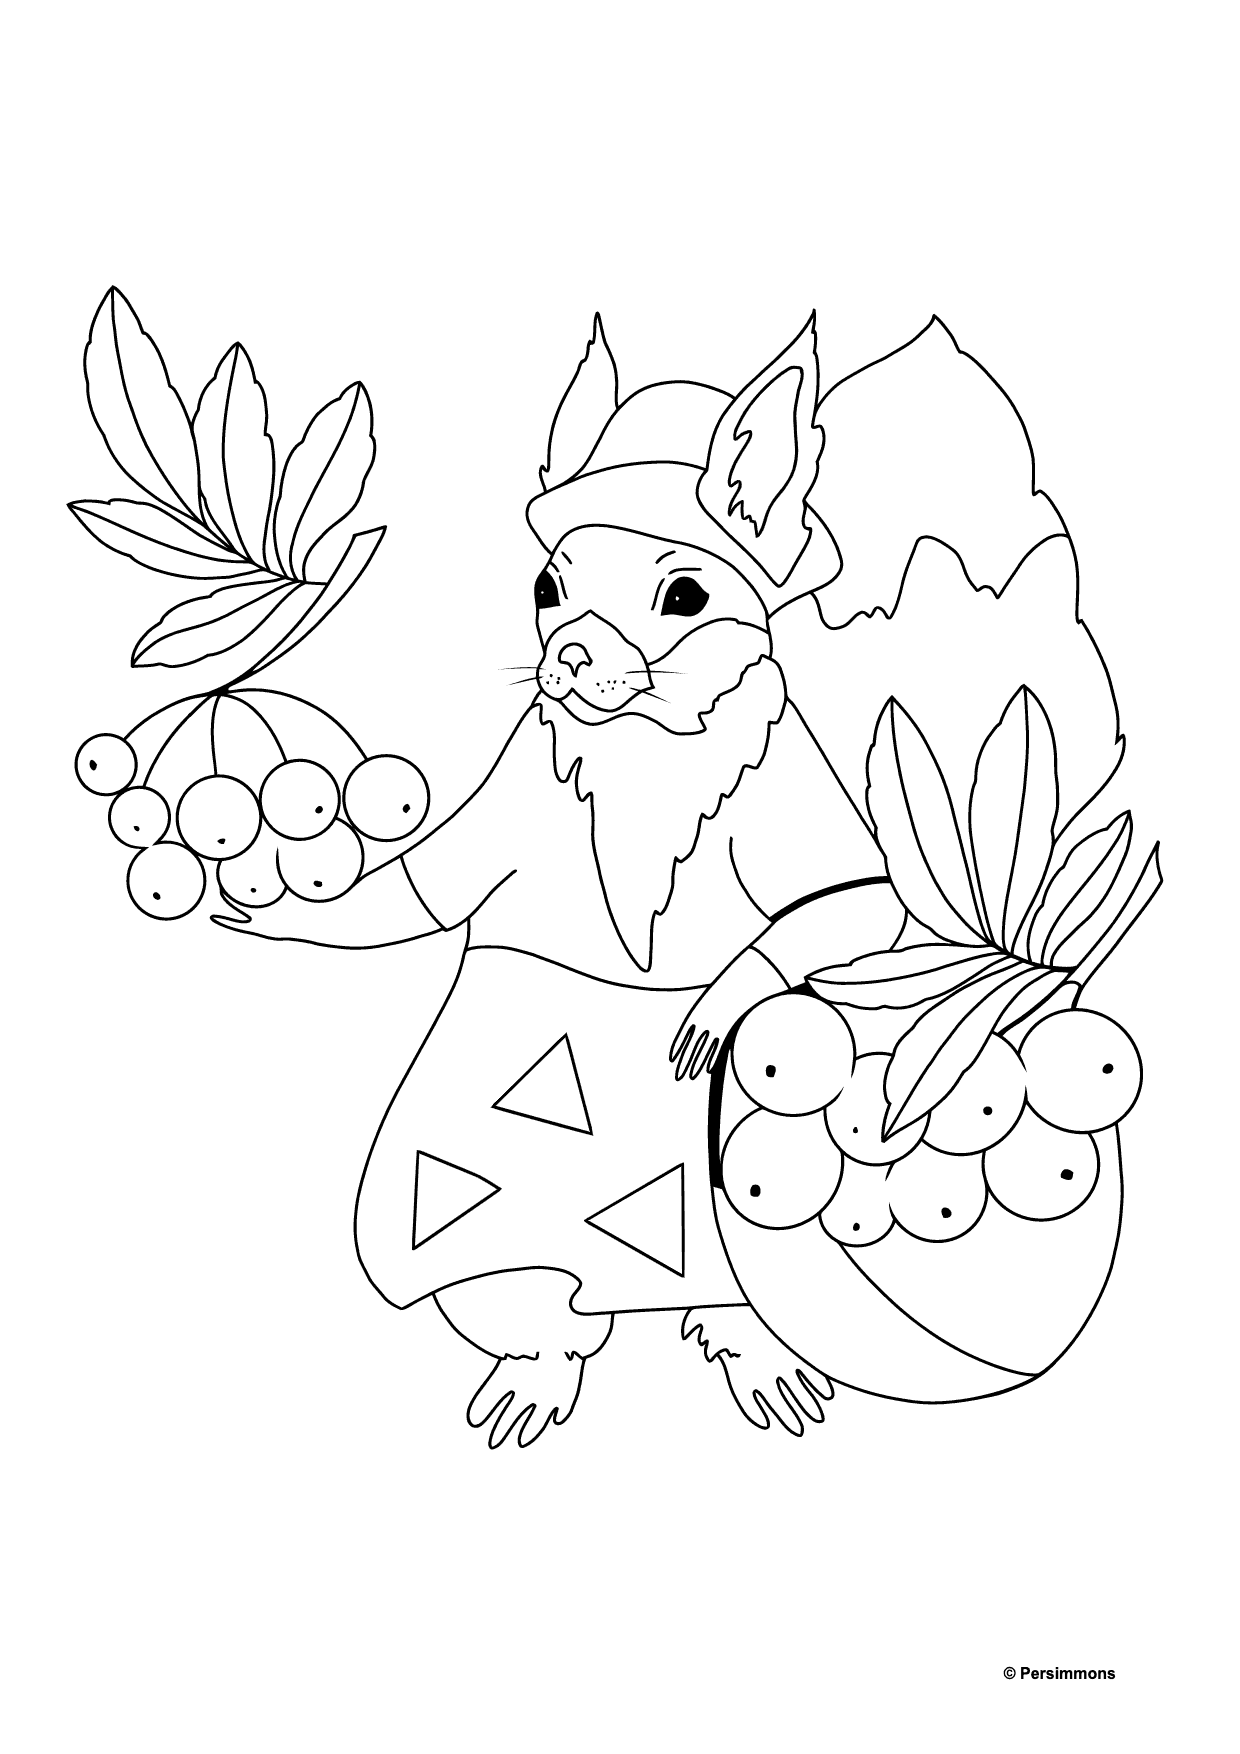 Autumn Coloring Page - Rowanberry Harvest Time for Kids